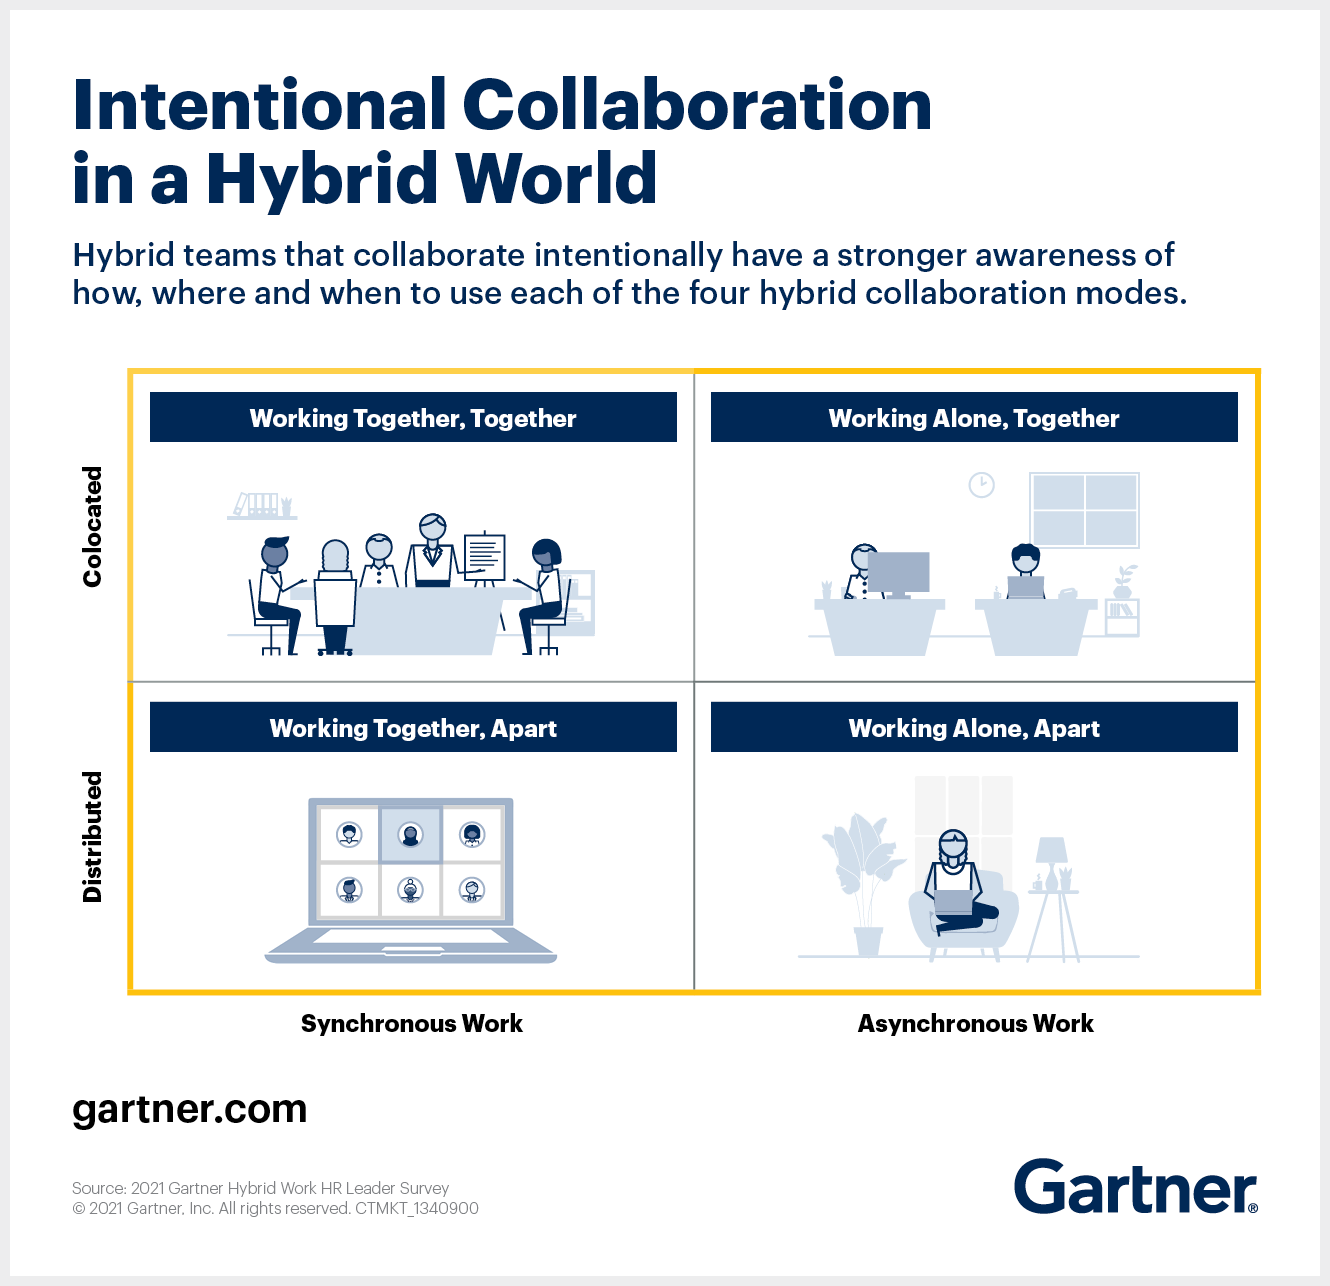 Intentional Collaboration in a Hybrid World